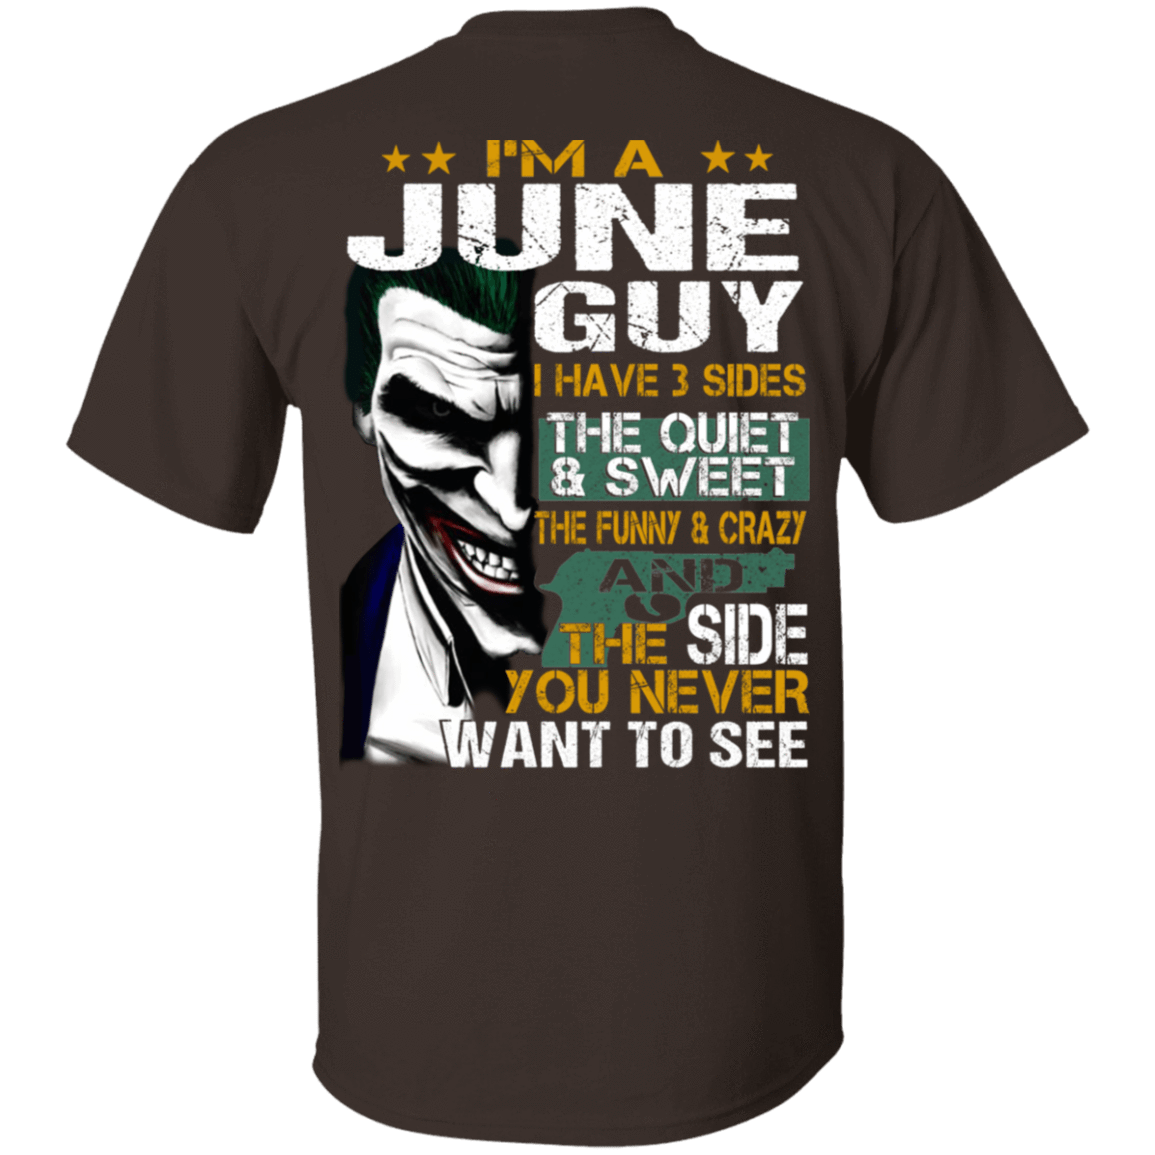 Joker June Guy Have 3 Sides The Quiet And Sweet T-Shirts, Hoodies 1049-9956-81647610-48152 - Tee Ript